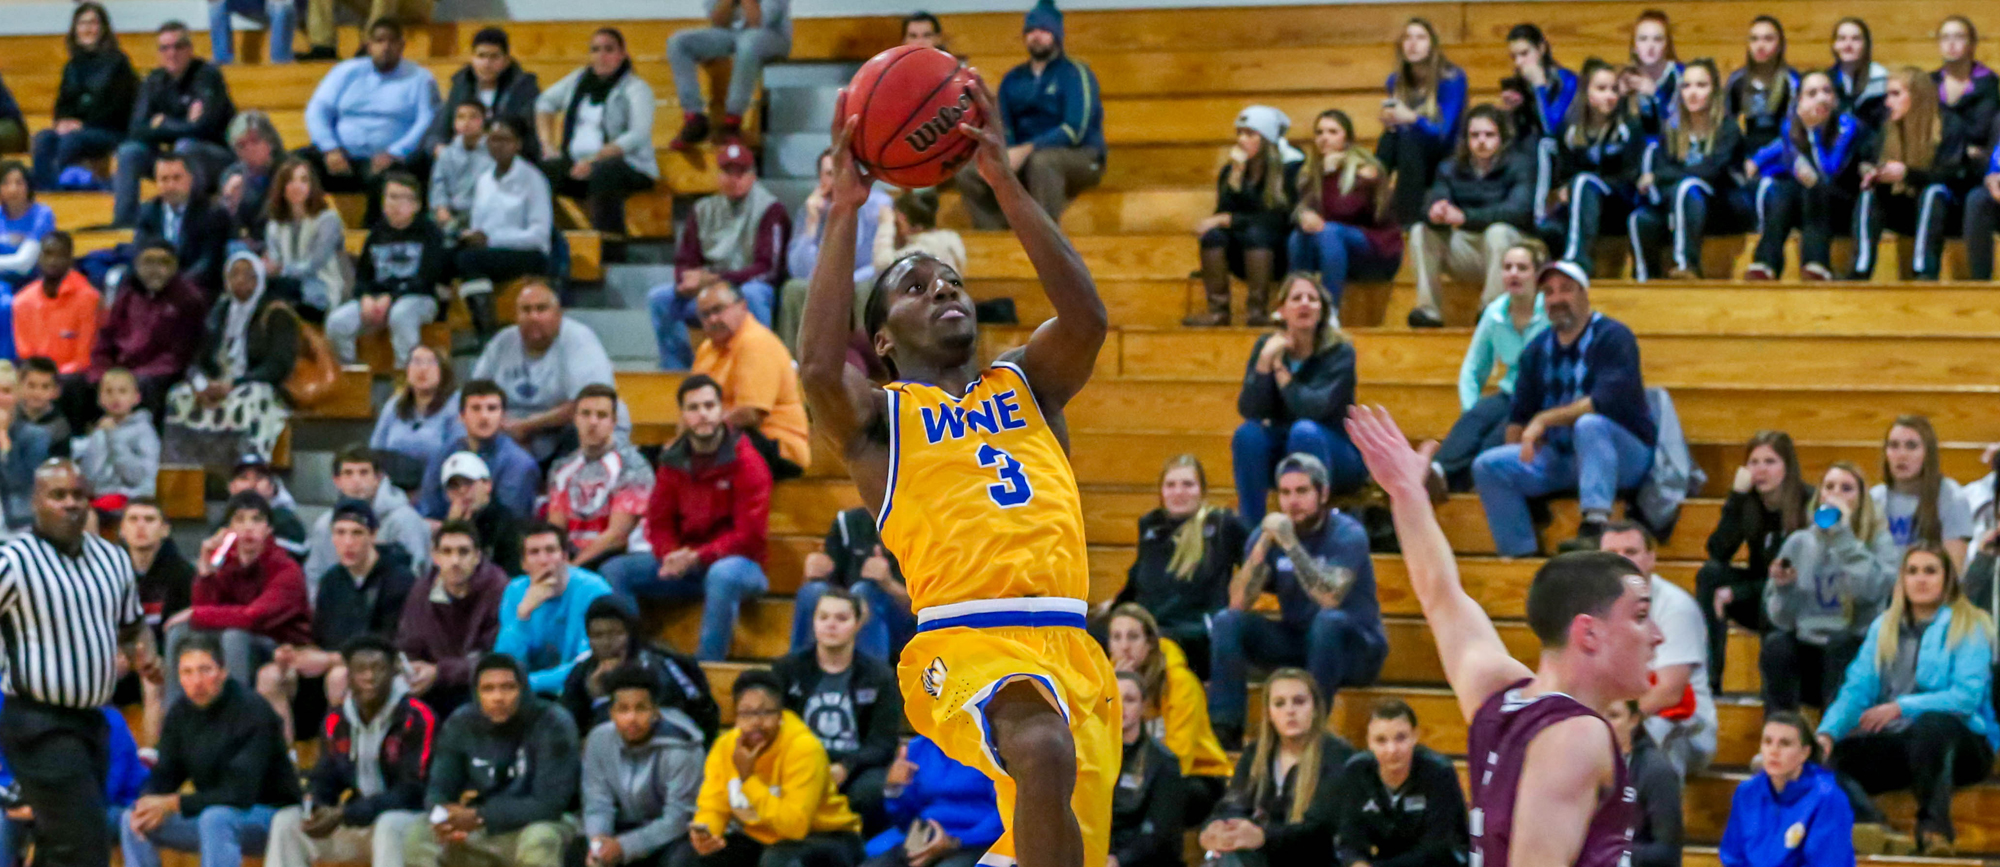 Golden Bears Fall to Salve Regina in CCC Opener, 80-69